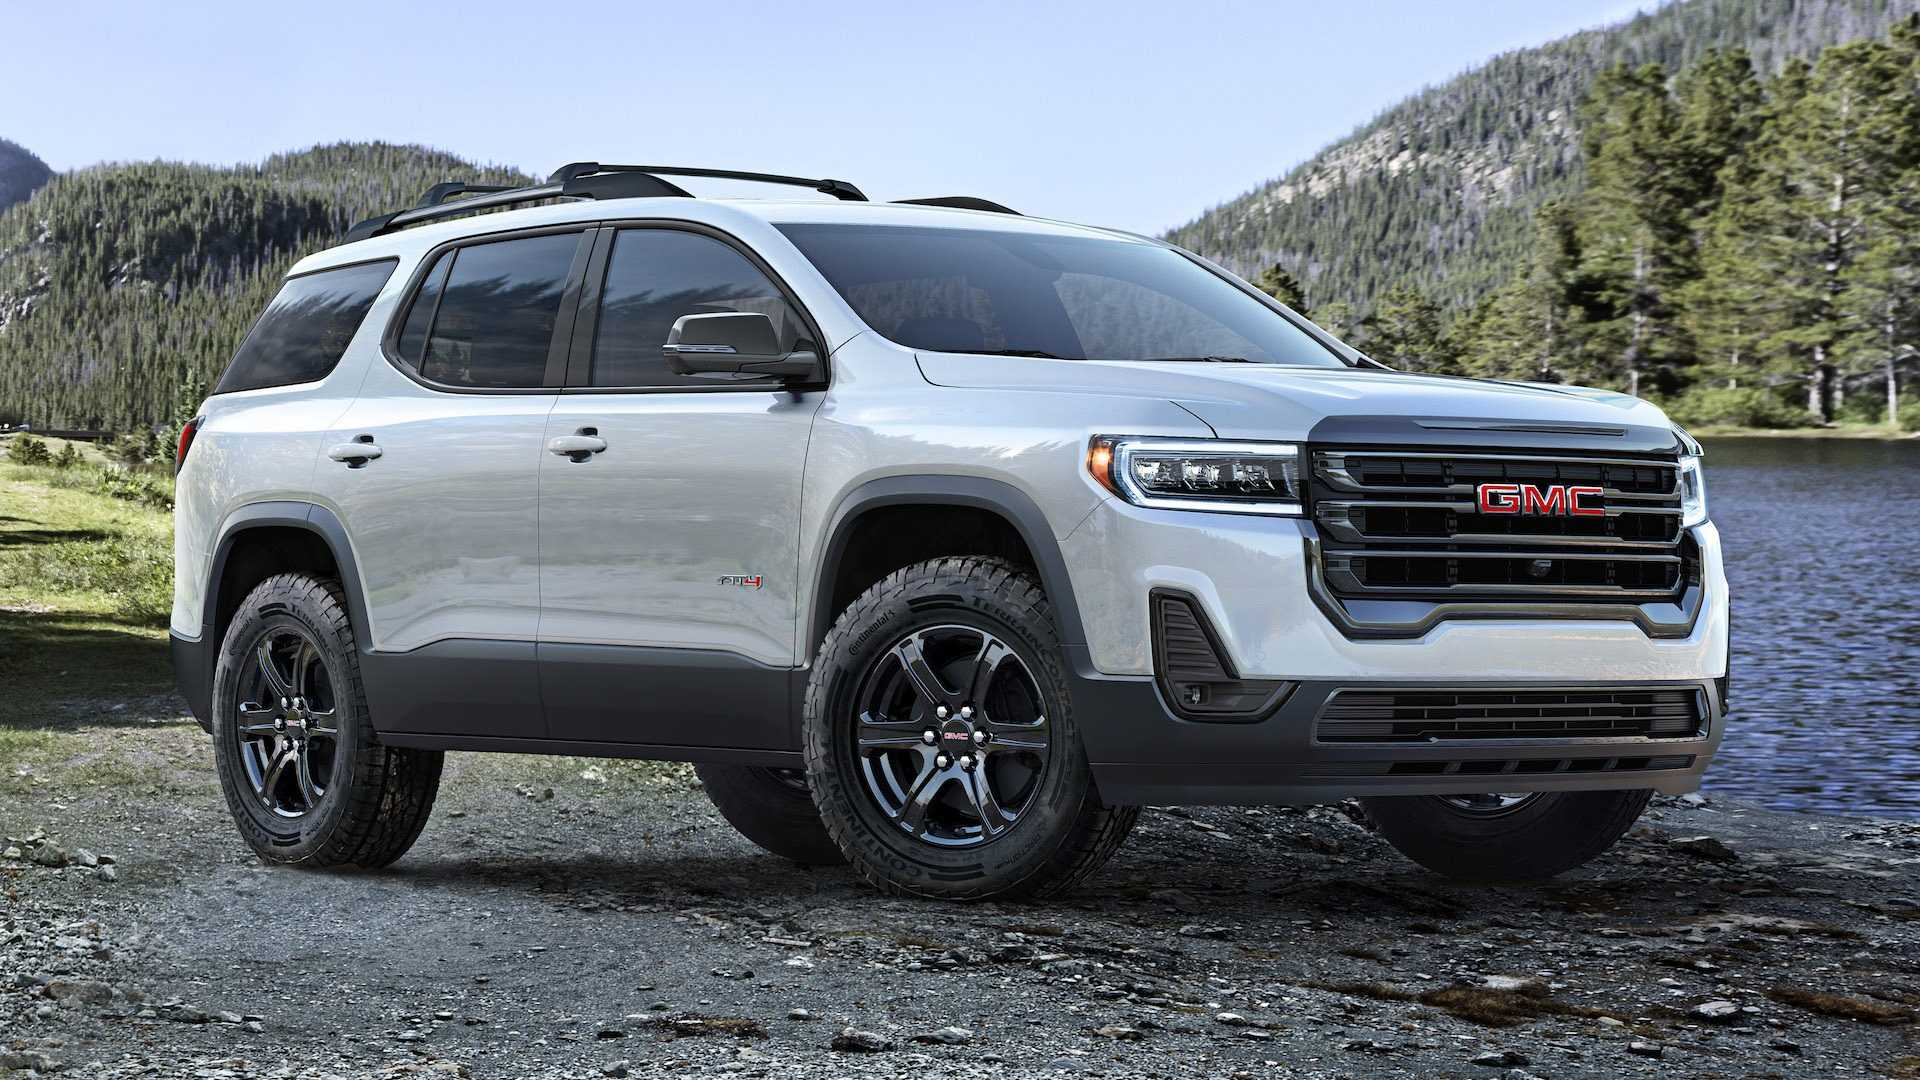 Gmc Acadia News And Reviews Motor1 Com